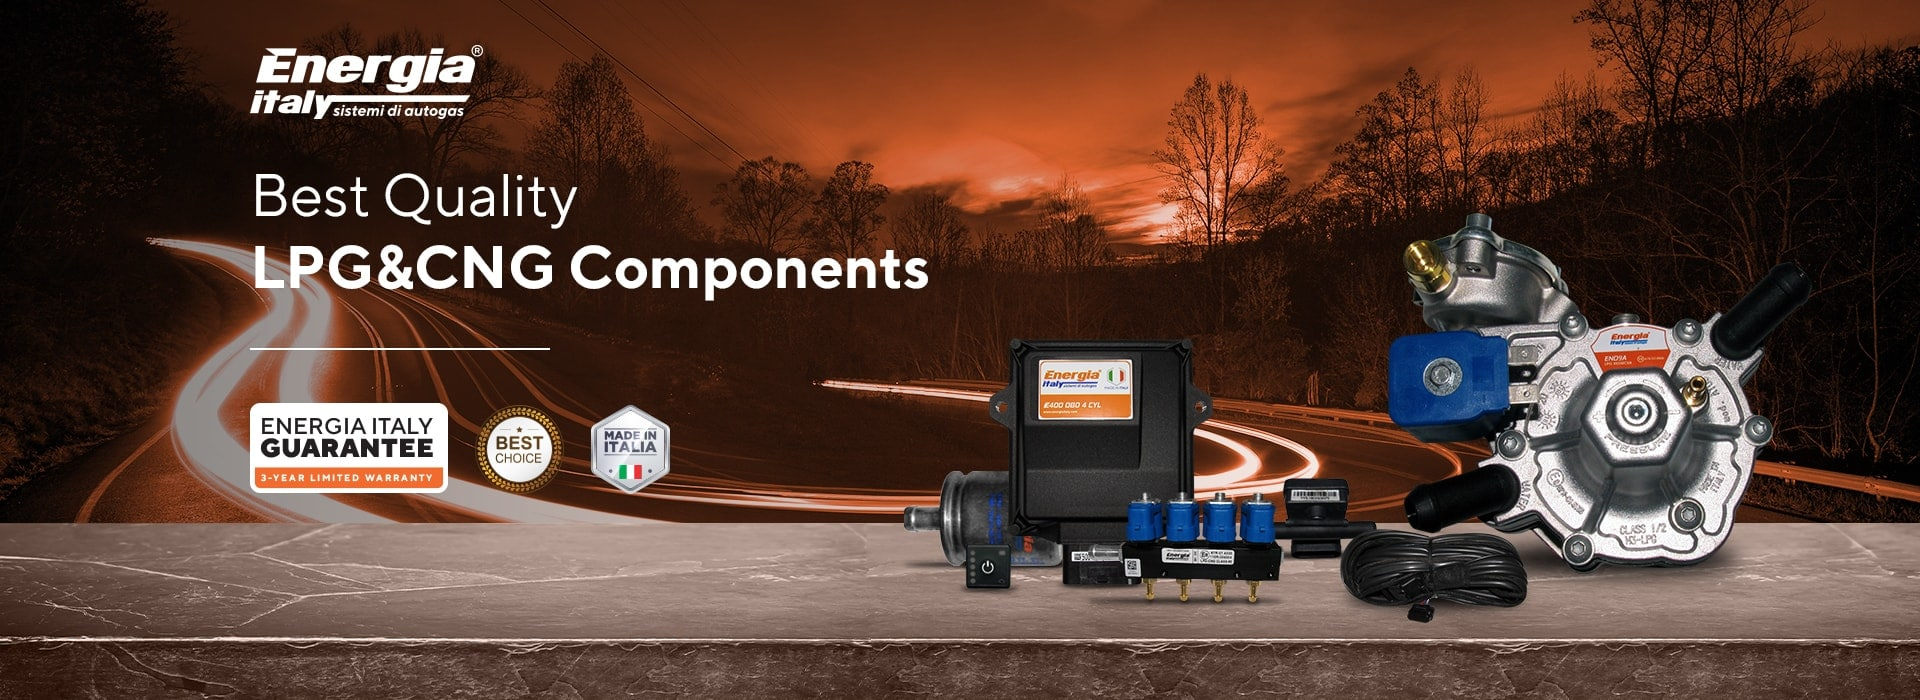 lpg-cng-components-slide-new-energia-italy-min